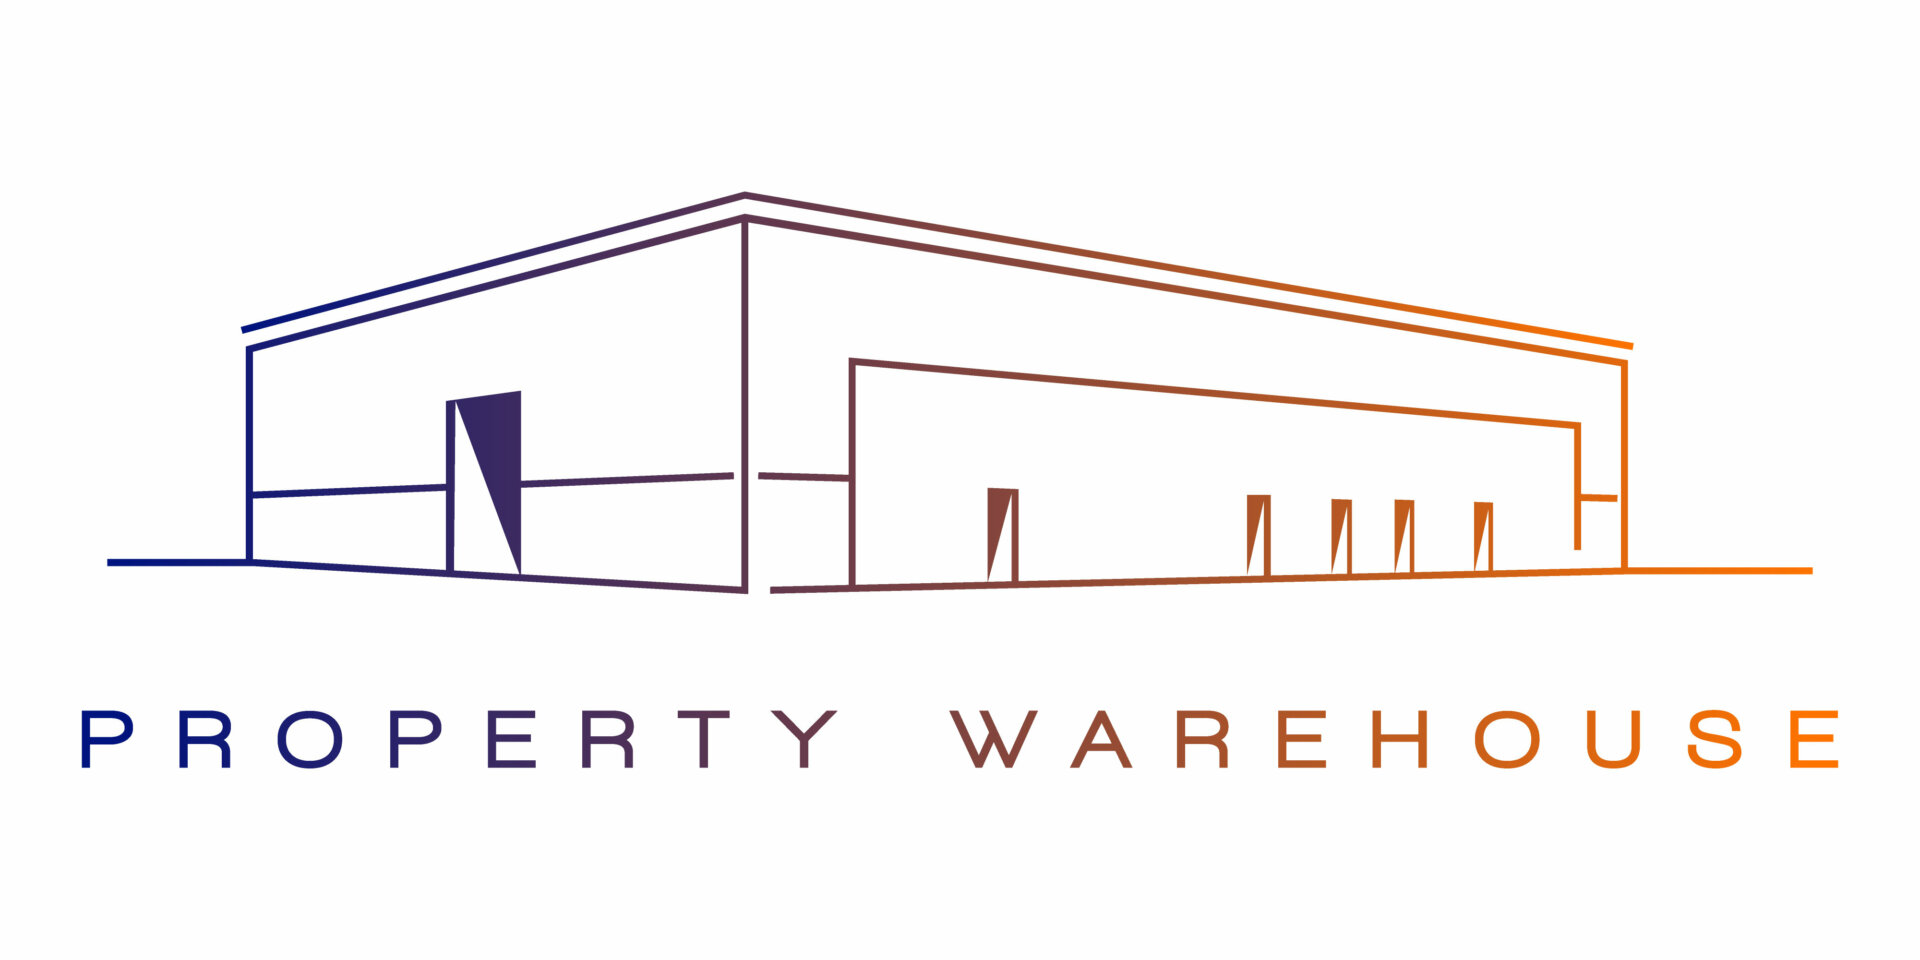 The Property Warehouse